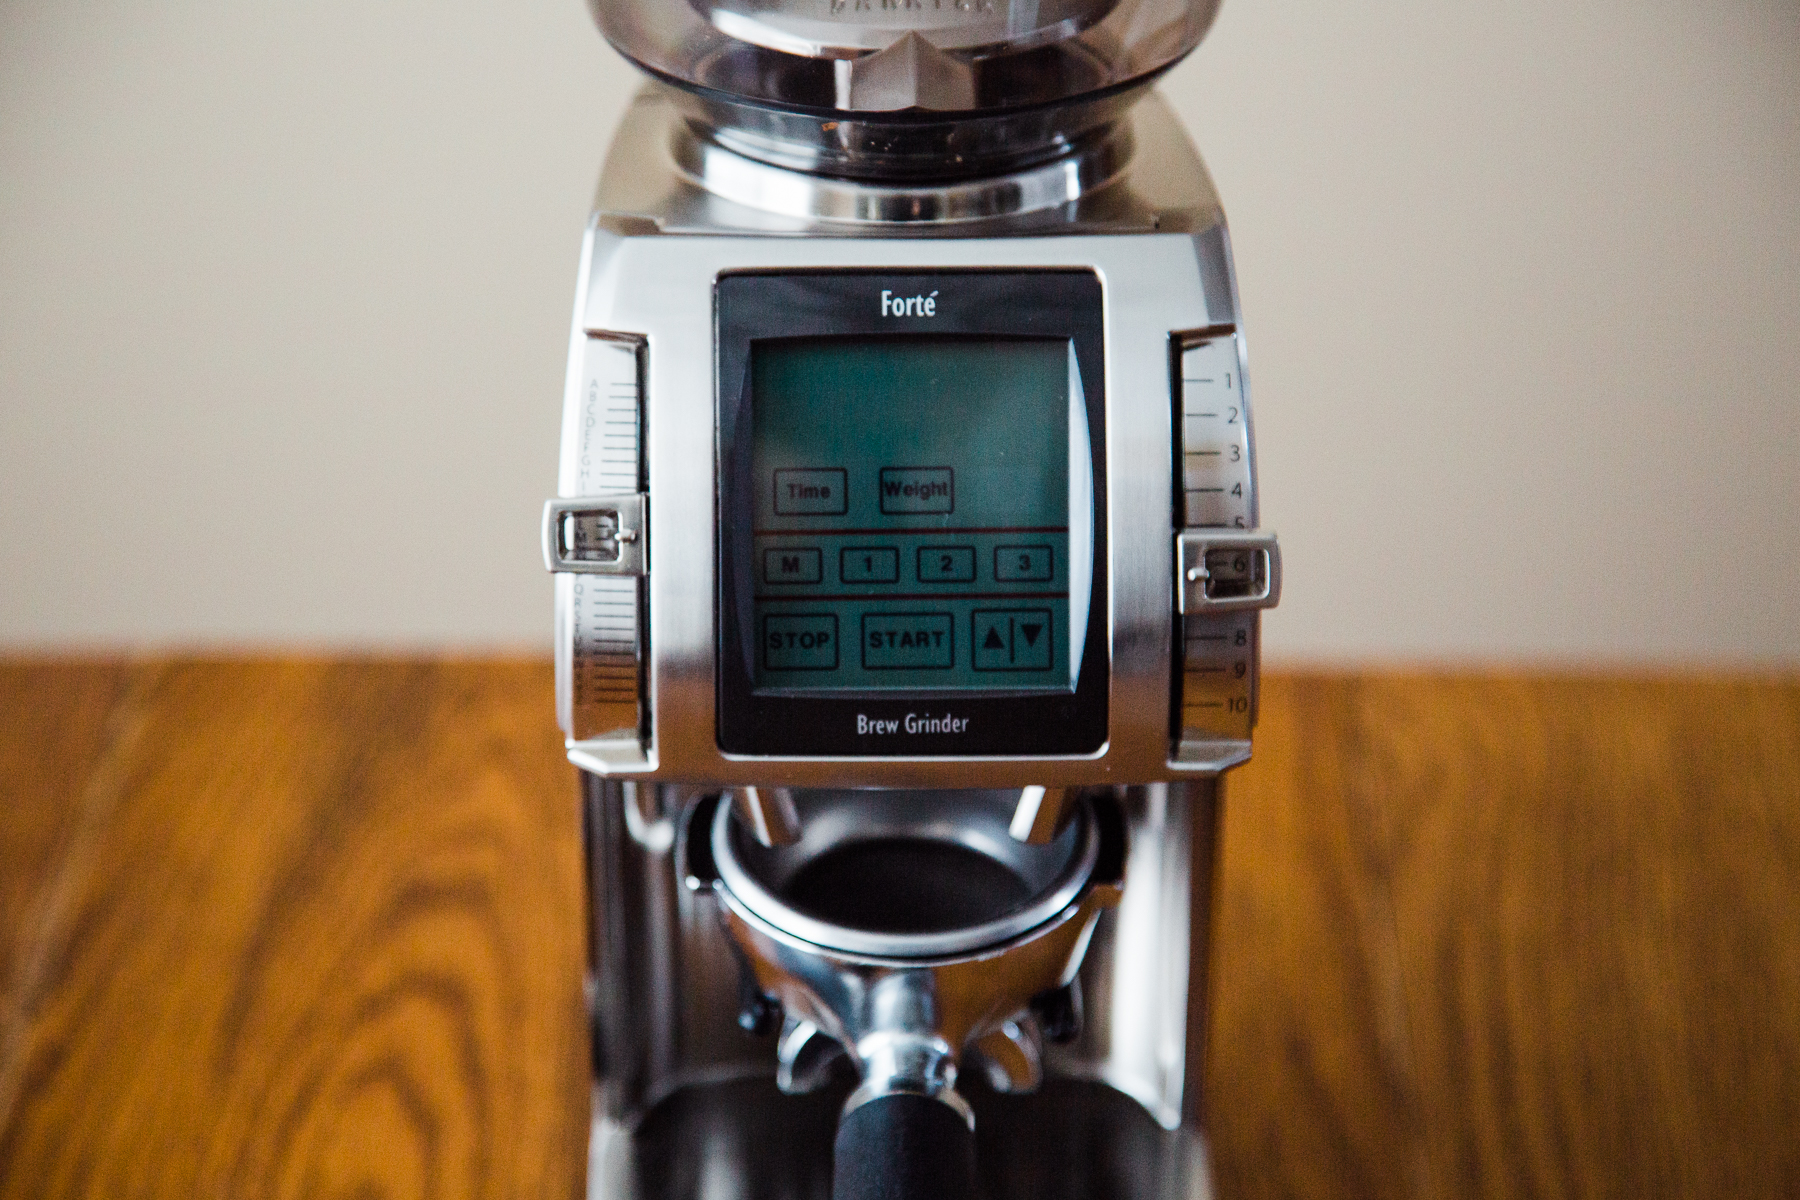 A closeup of Baratza's Forte, focusing on the touch-screen control panel.